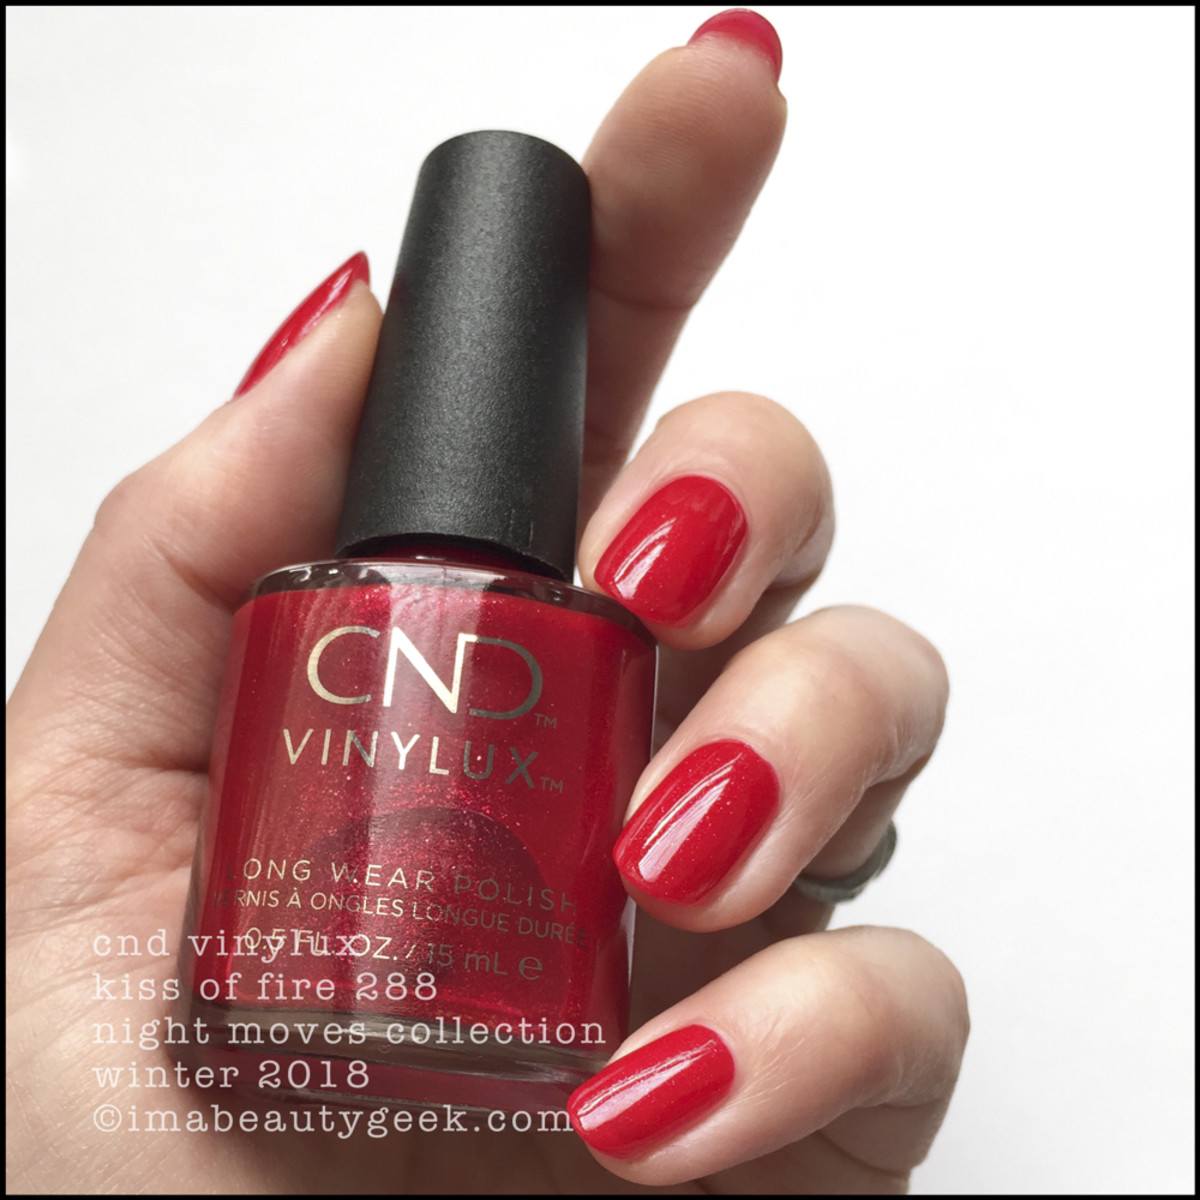 CND Kiss of Fire 288 - Vinylux Night Moves Collection 2018